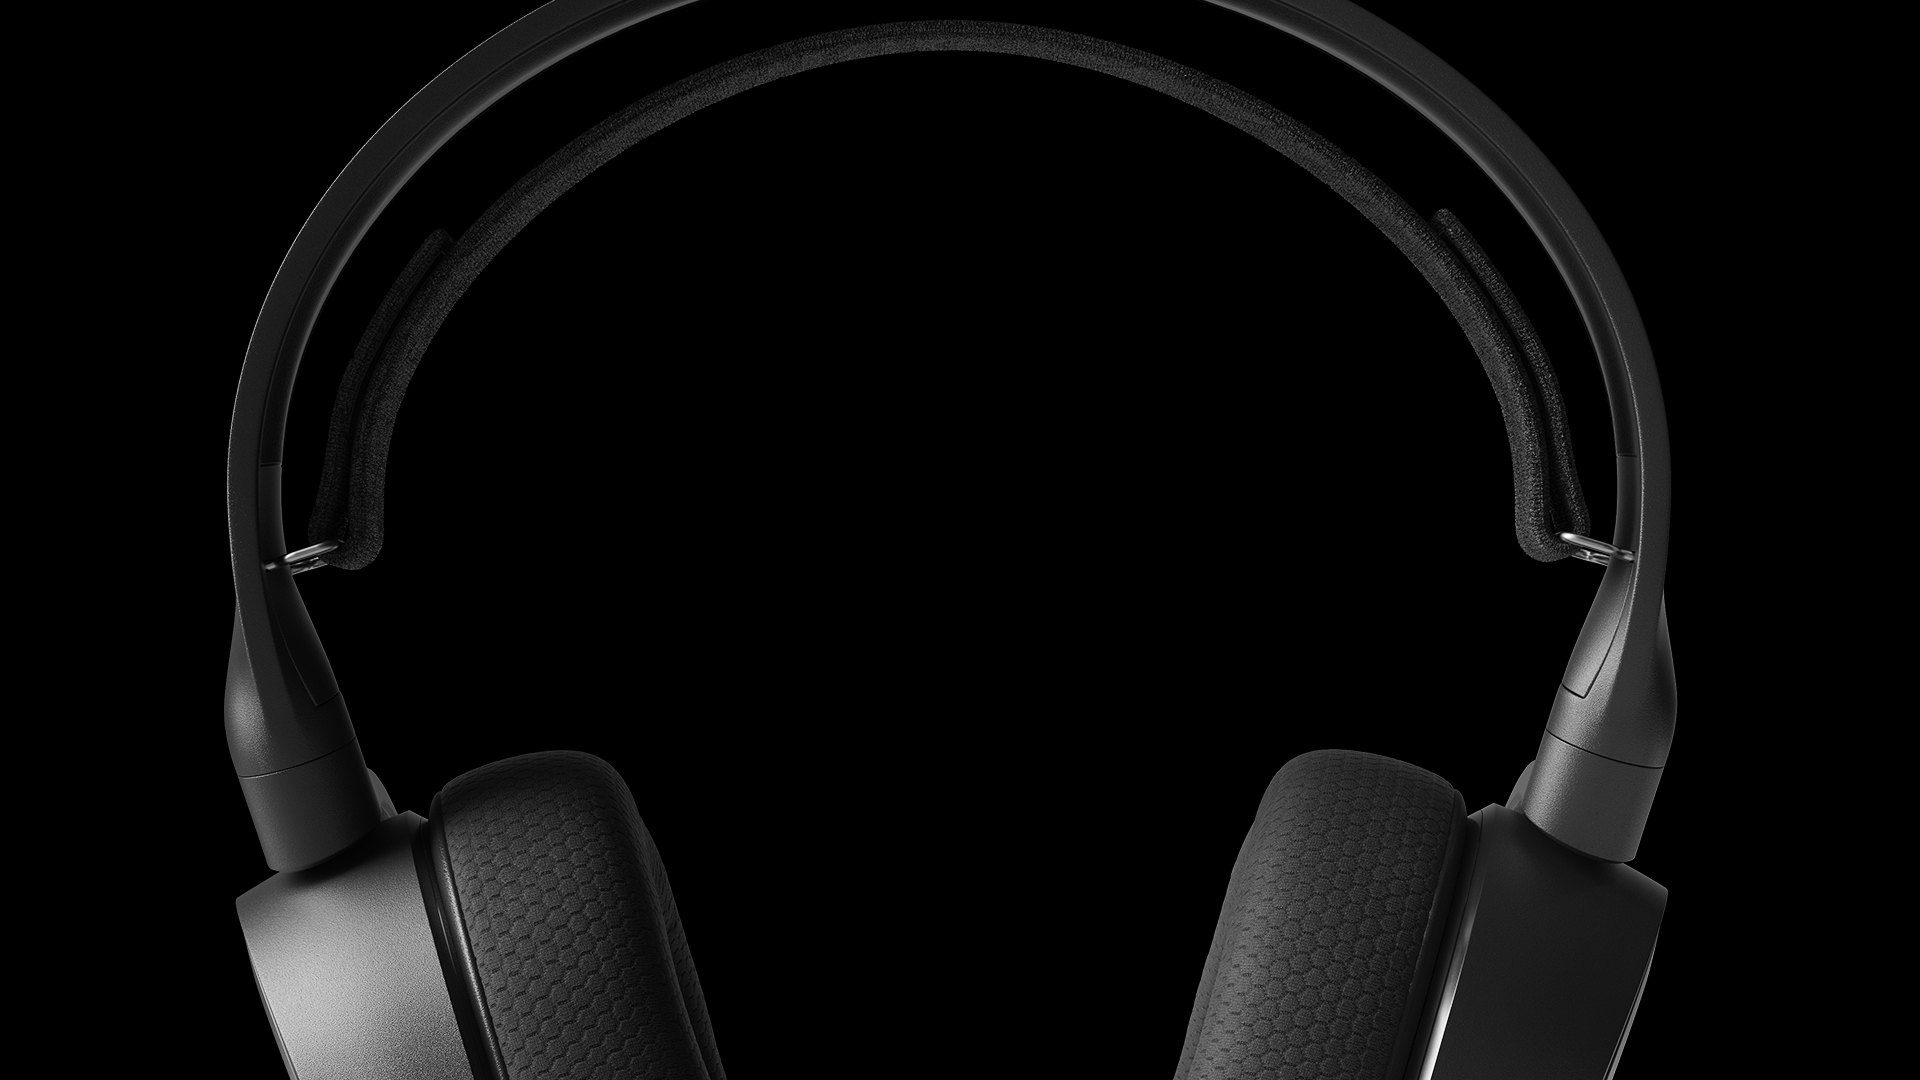 Arctis 3 along a black background contrasting the material details